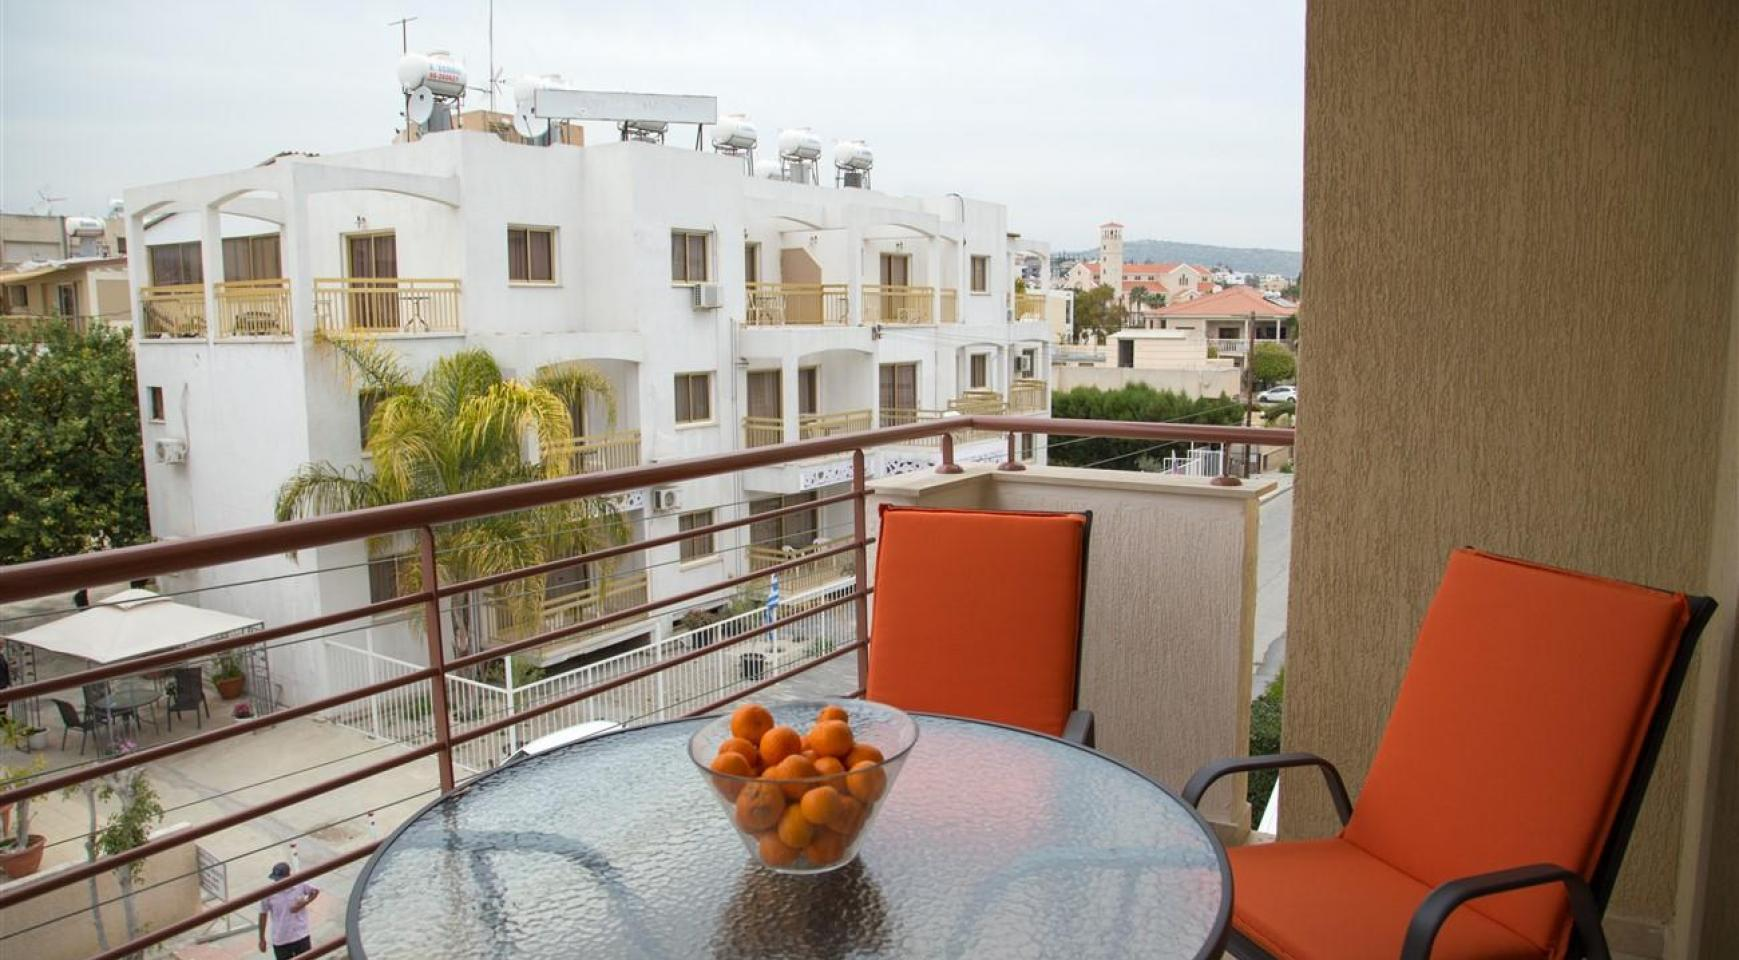 Luxury 2 Bedroom Apartment Frida 201 in the Tourist Area - 16